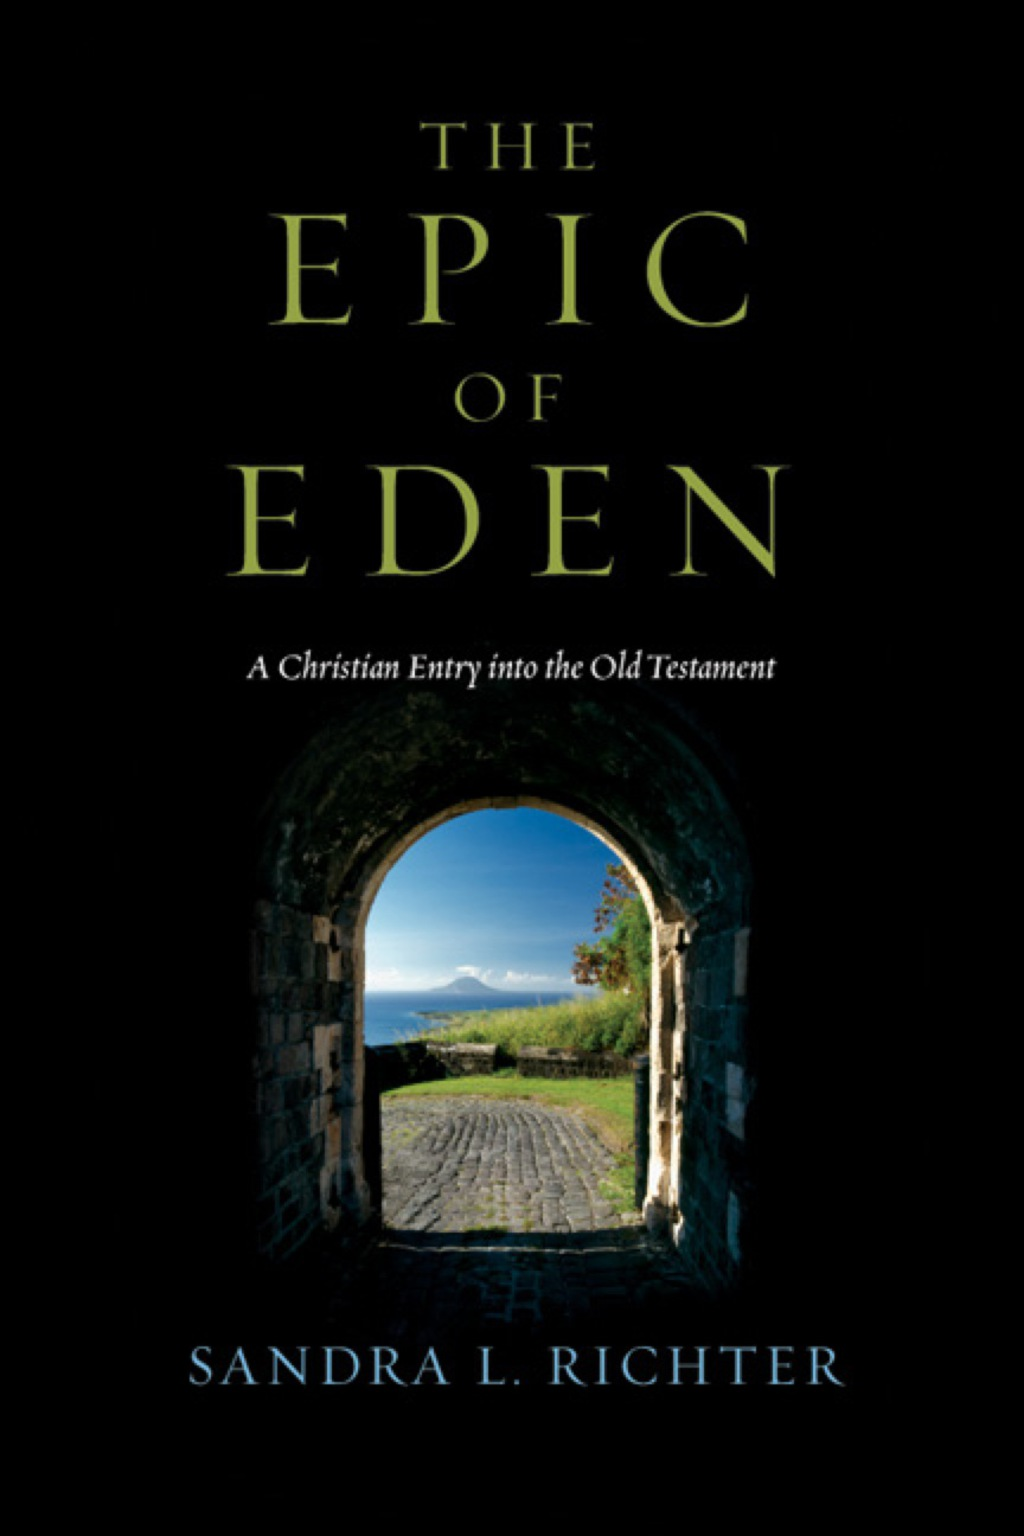 The Epic of Eden: A Christian Entry into the Old Testament (eBook)